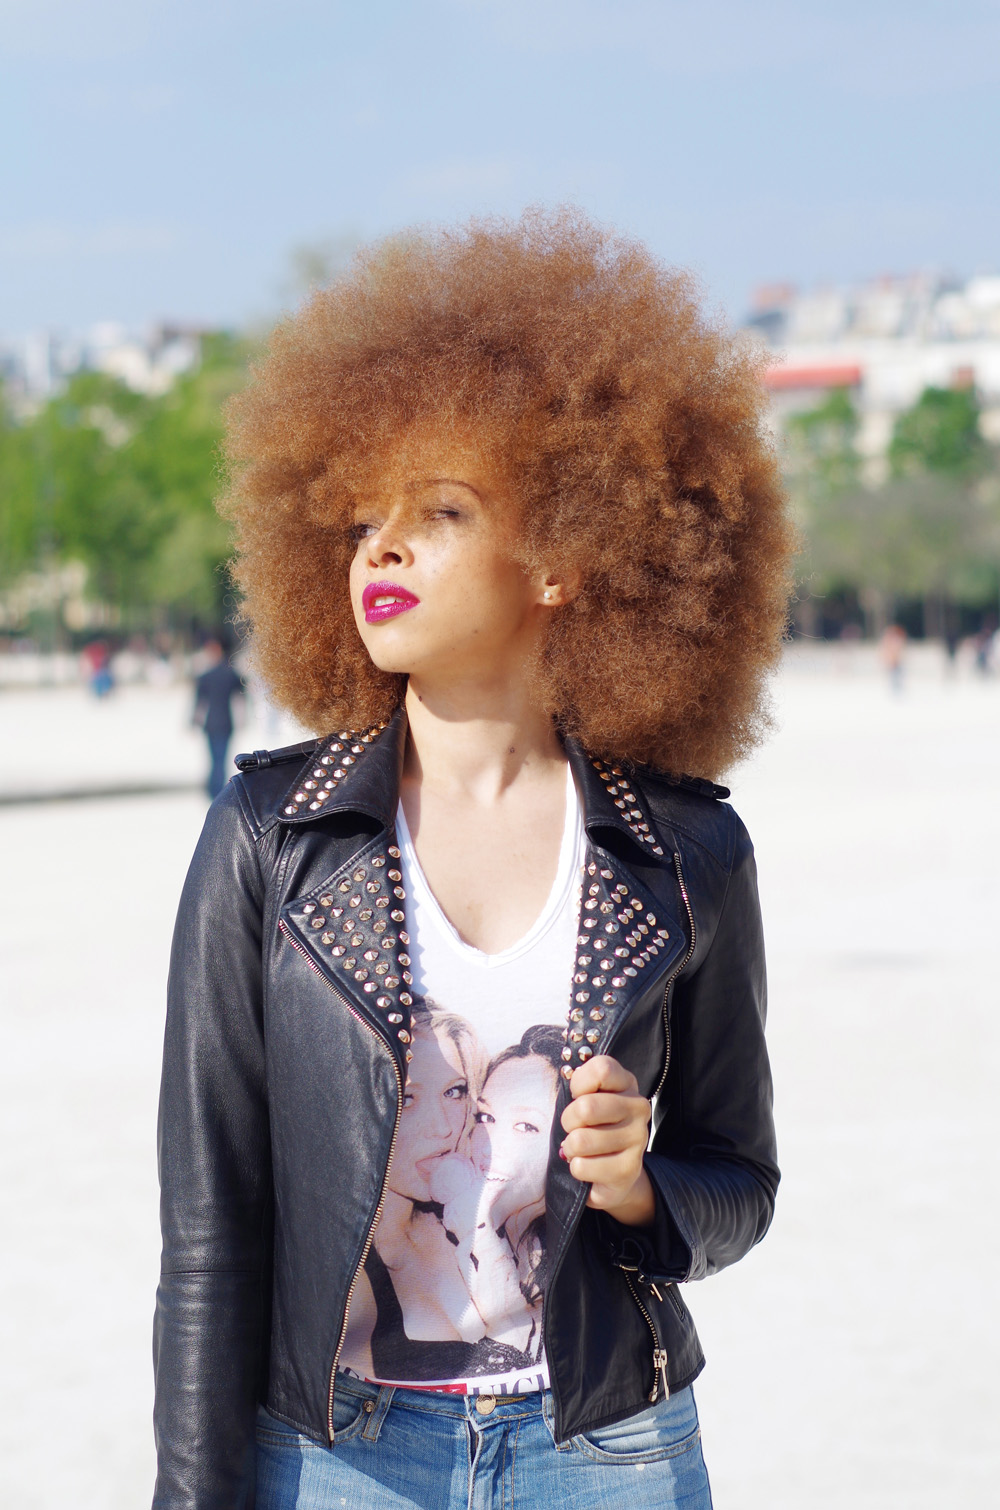 fatimayarie-afro-redhair-freckles-fashionblog-leatherjacket-studded-imgp9339